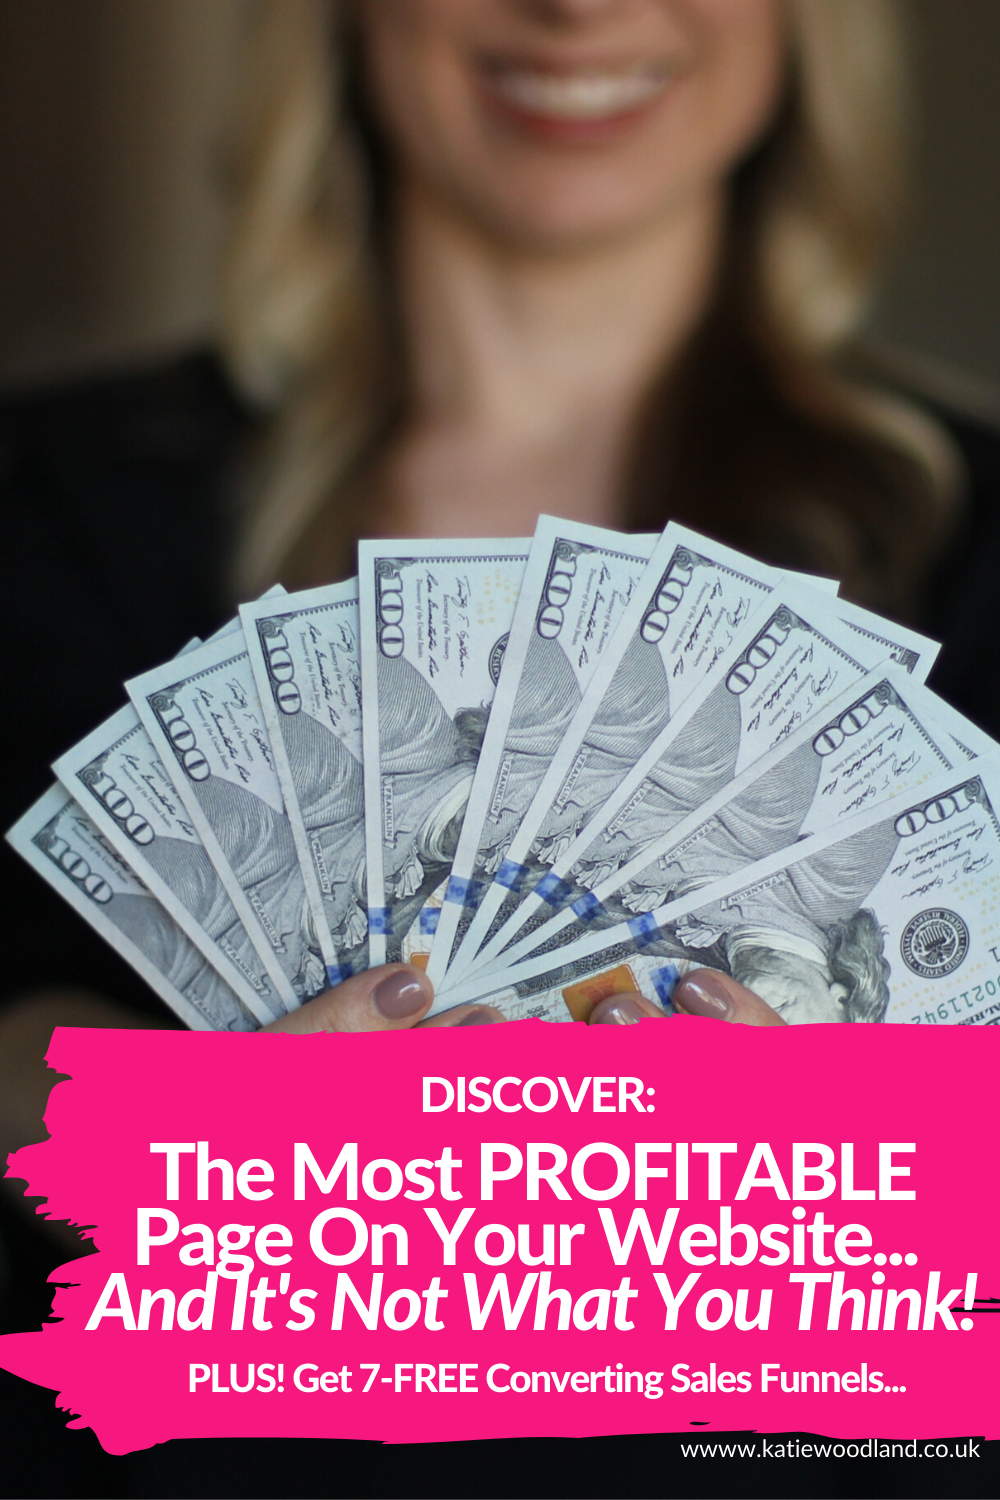 DISCOVER: The Most Profitable Page On Your Website ... And It's Not What You Think!